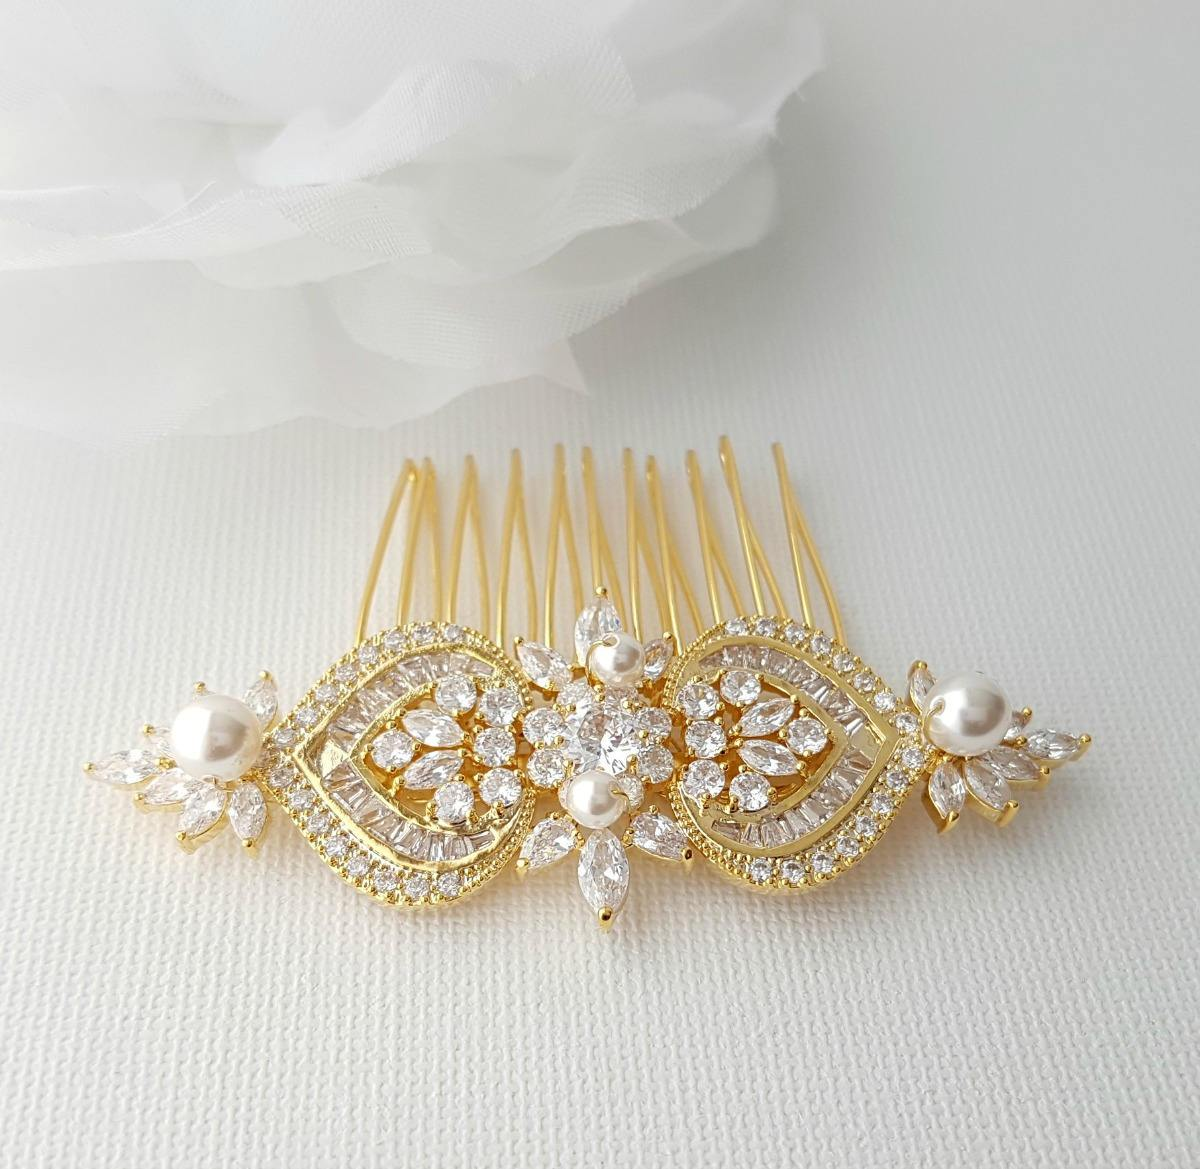 Gold Hair Comb, Wedding Hair Comb, Pearl Bridal Hair Piece, Crystal Rose Gold Headpiece, Swarovski Pearls, Bride Hair Jewelry, Rosa - PoetryDesigns